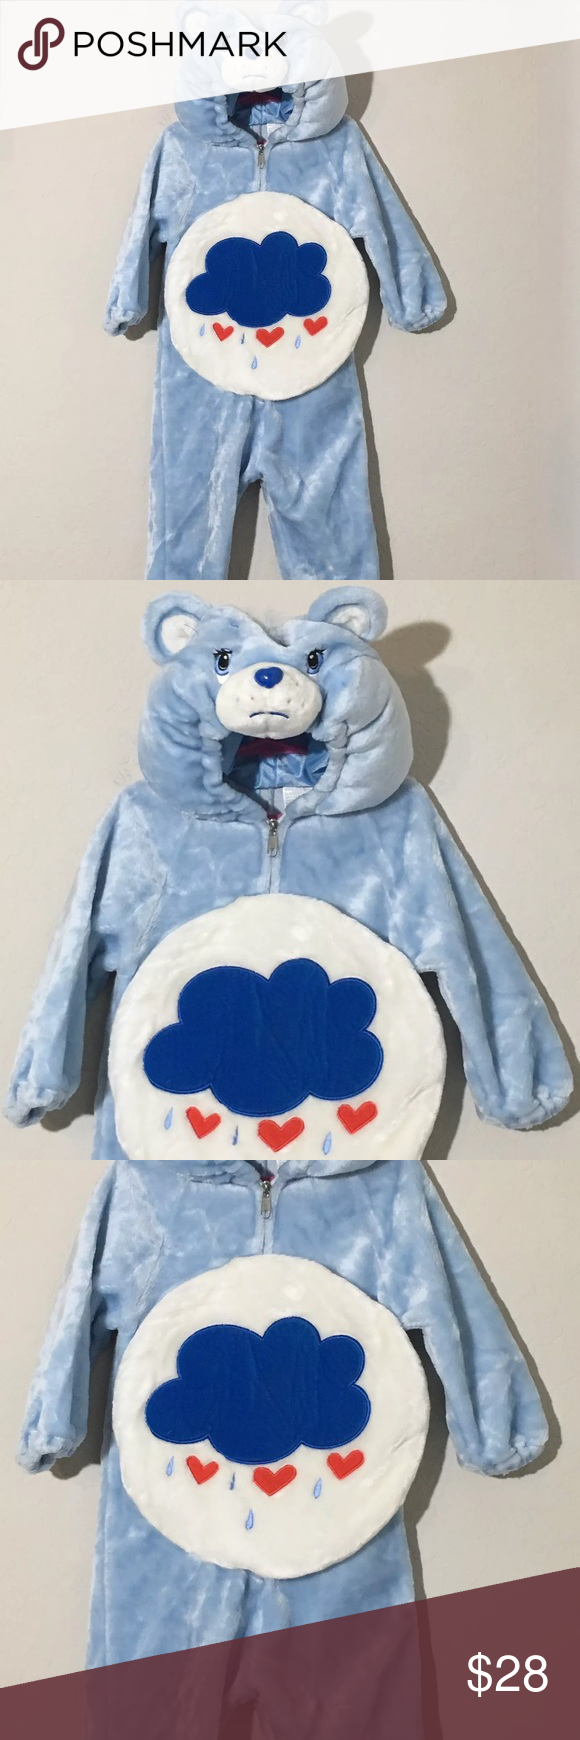 Care Bear Blue Grumpy Bear Halloween Costume 2T-4T Children's Care Bears Grumpy Bear Halloween costume! Full body suit feet and hands will be out bear hood goes over head with child's face showing. Excellent condition no flaws Costumes Halloween #carebearcostume